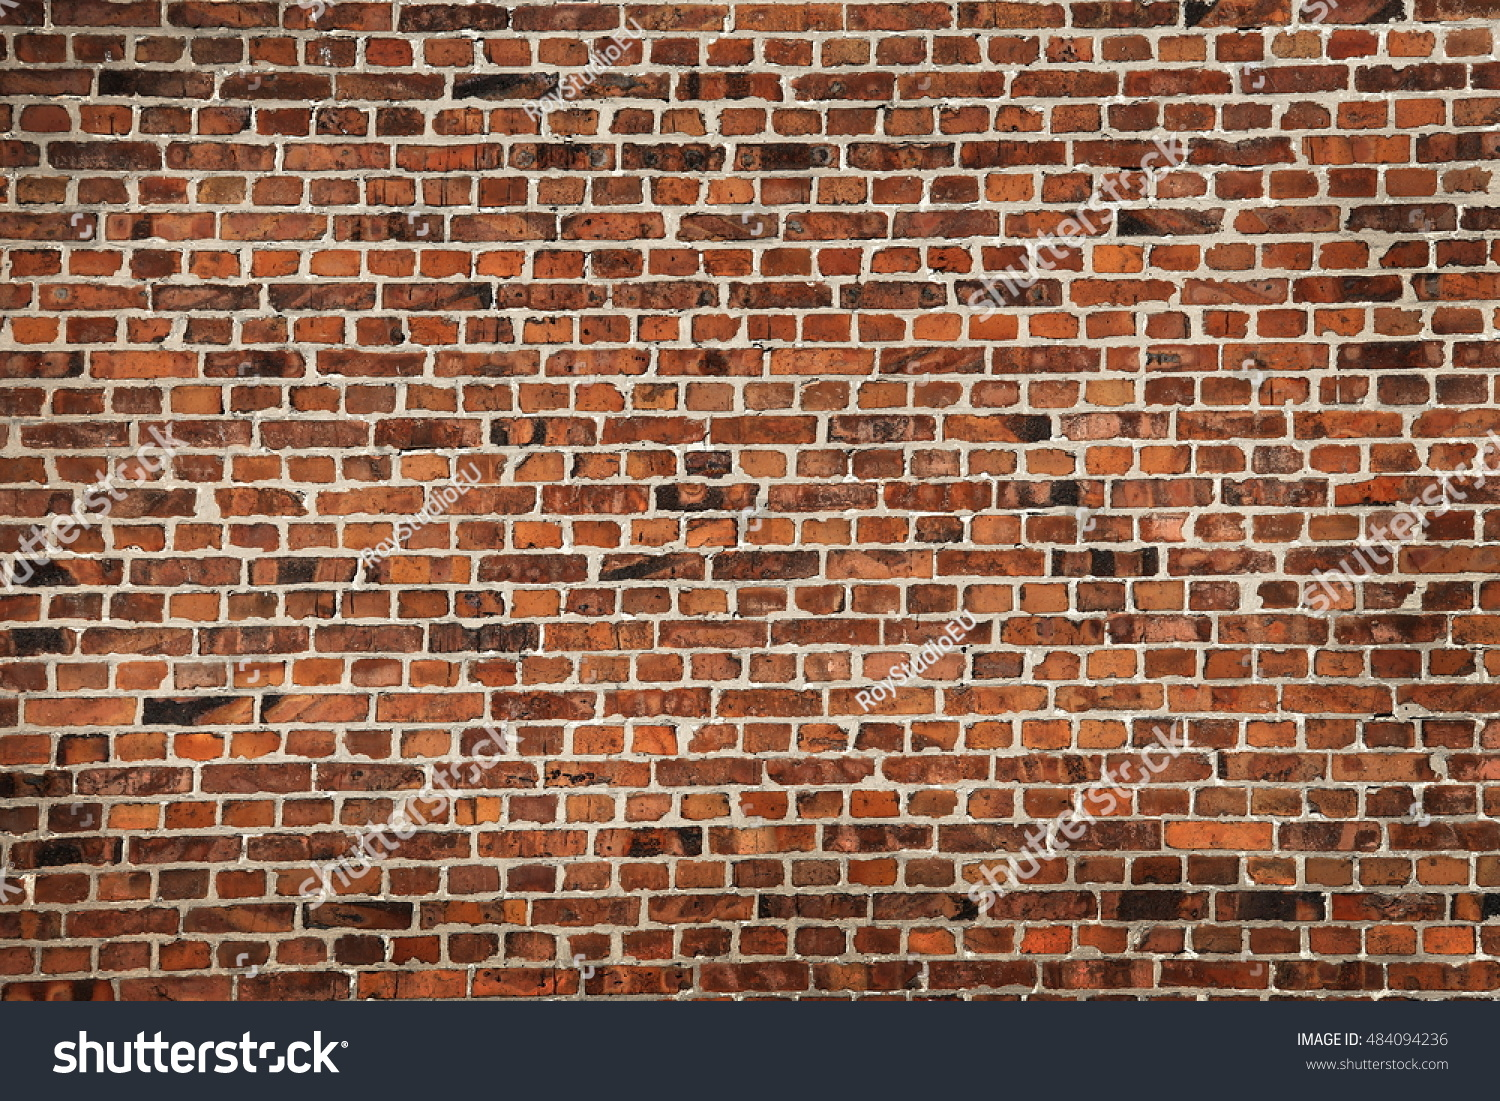 Red Brick Wall Texture Grunge Background Stock Photo